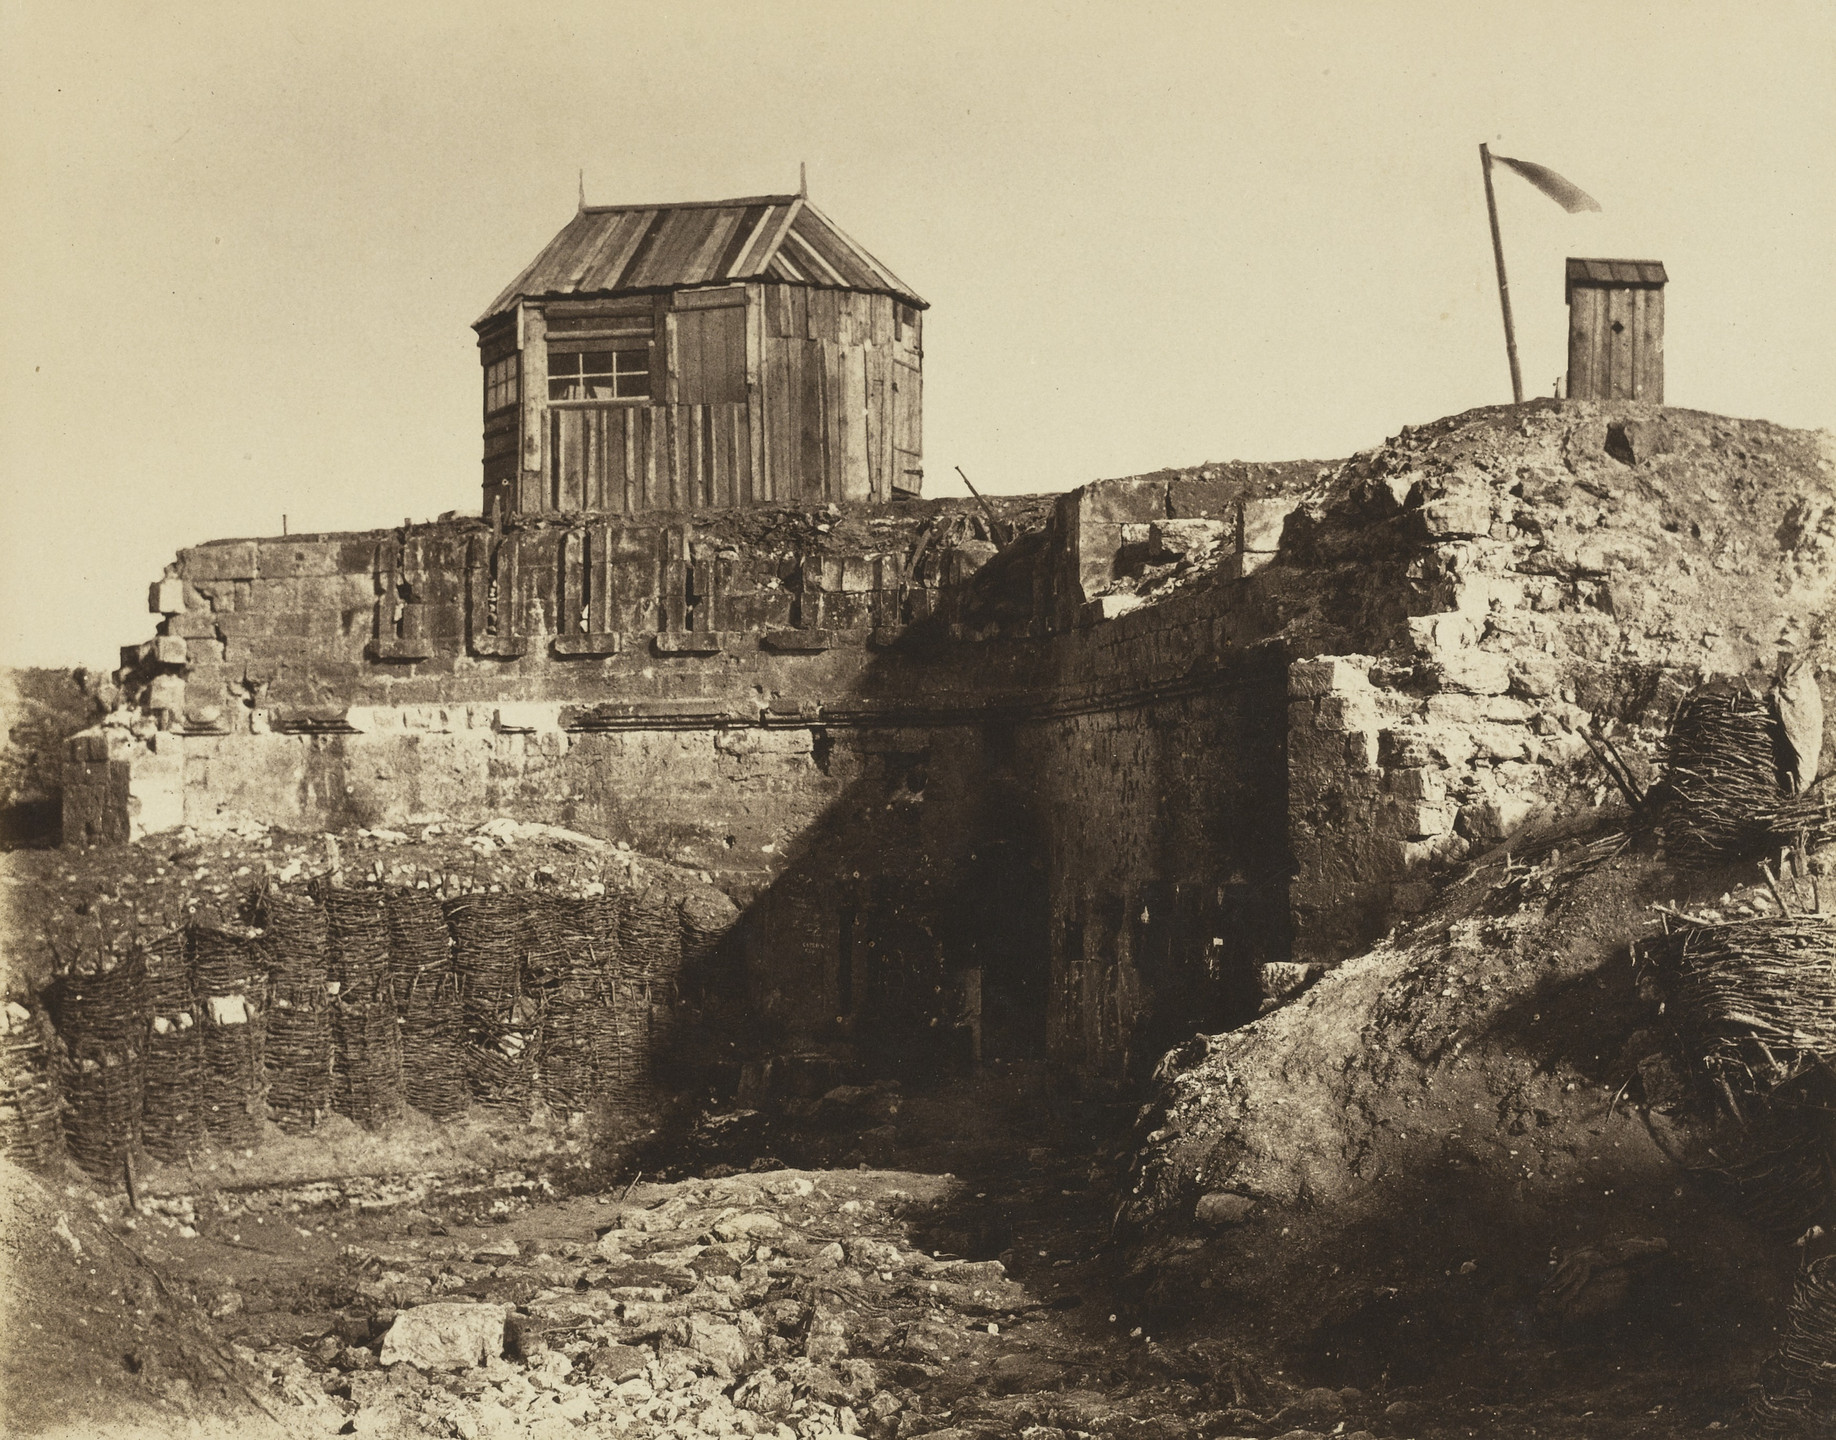 Jean-Charles Langlois. Malakoff Tower, Crimea. 1855